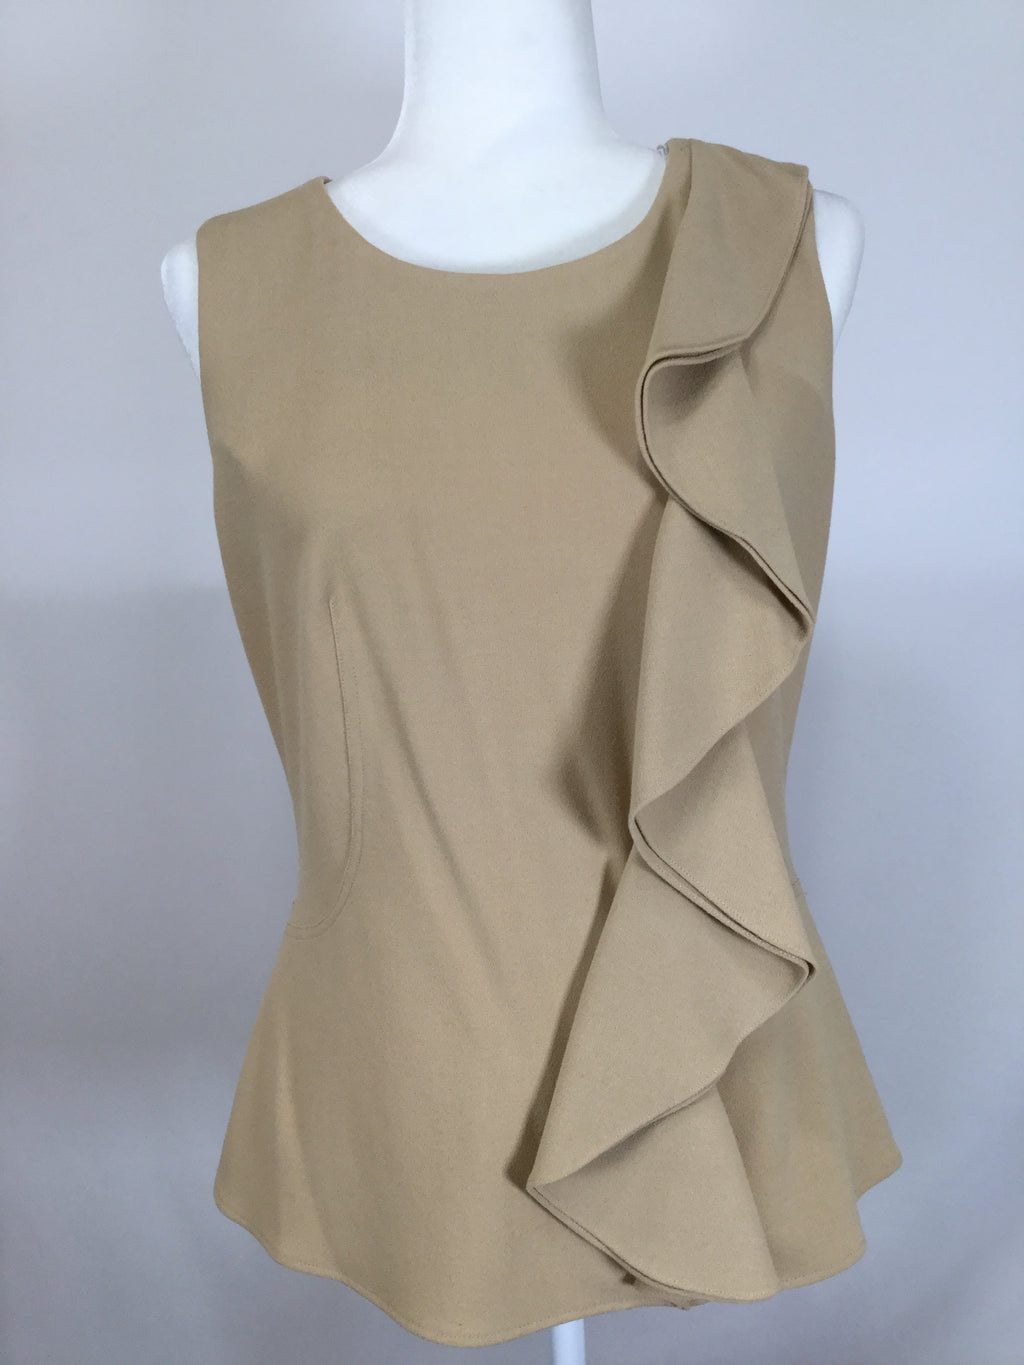 Calvin Klein Top Sleeveless Size:m NWT!